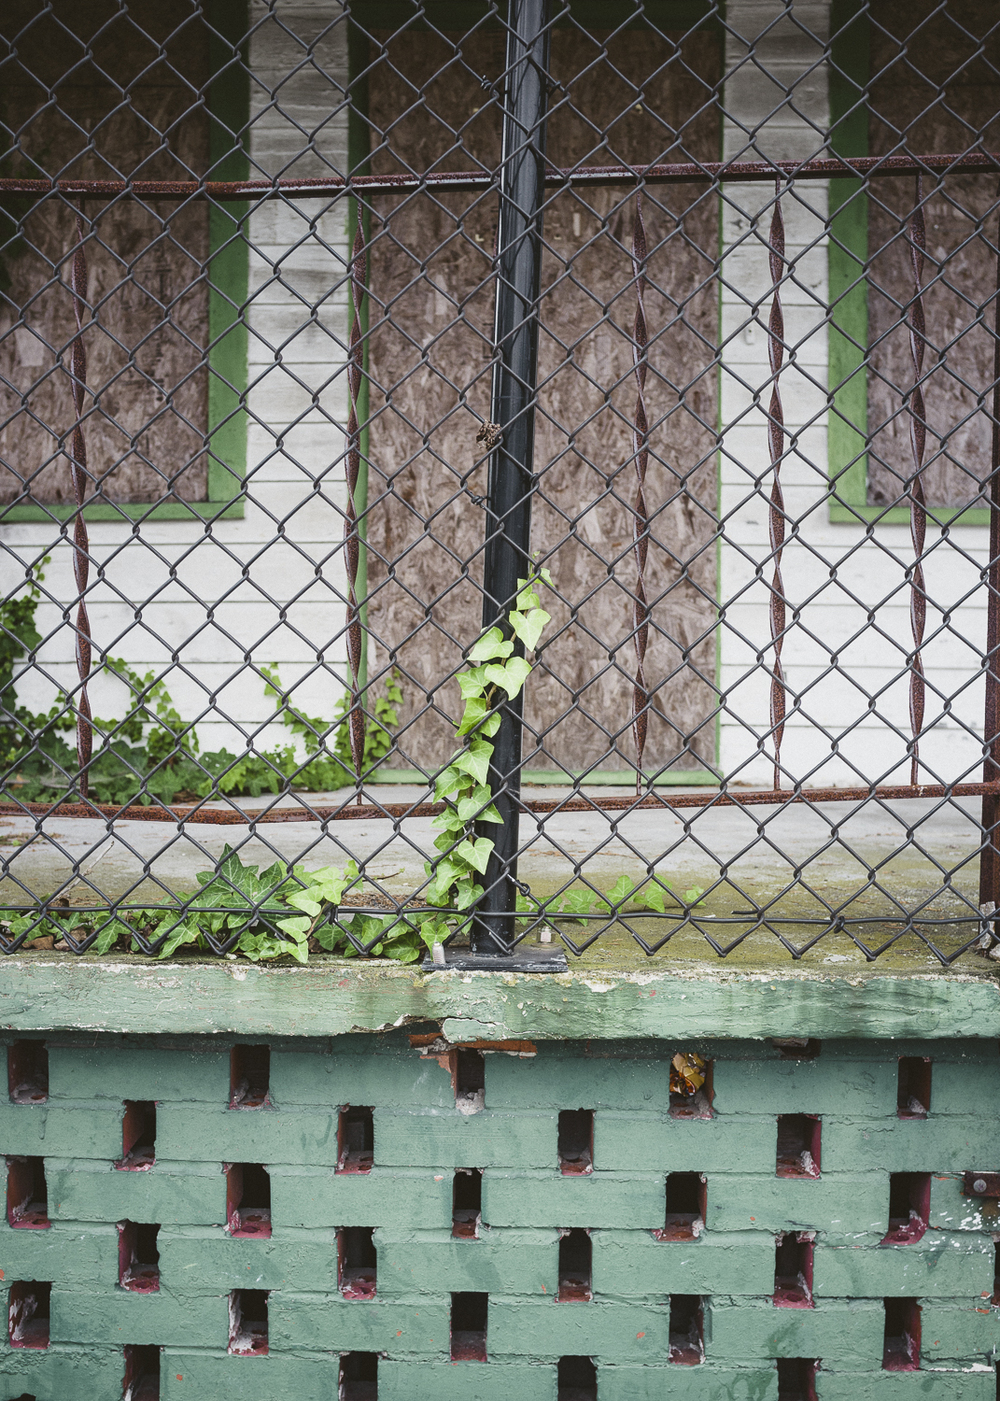 king-st-north-central-charleston-street-urban-abandoned-porch.jpg